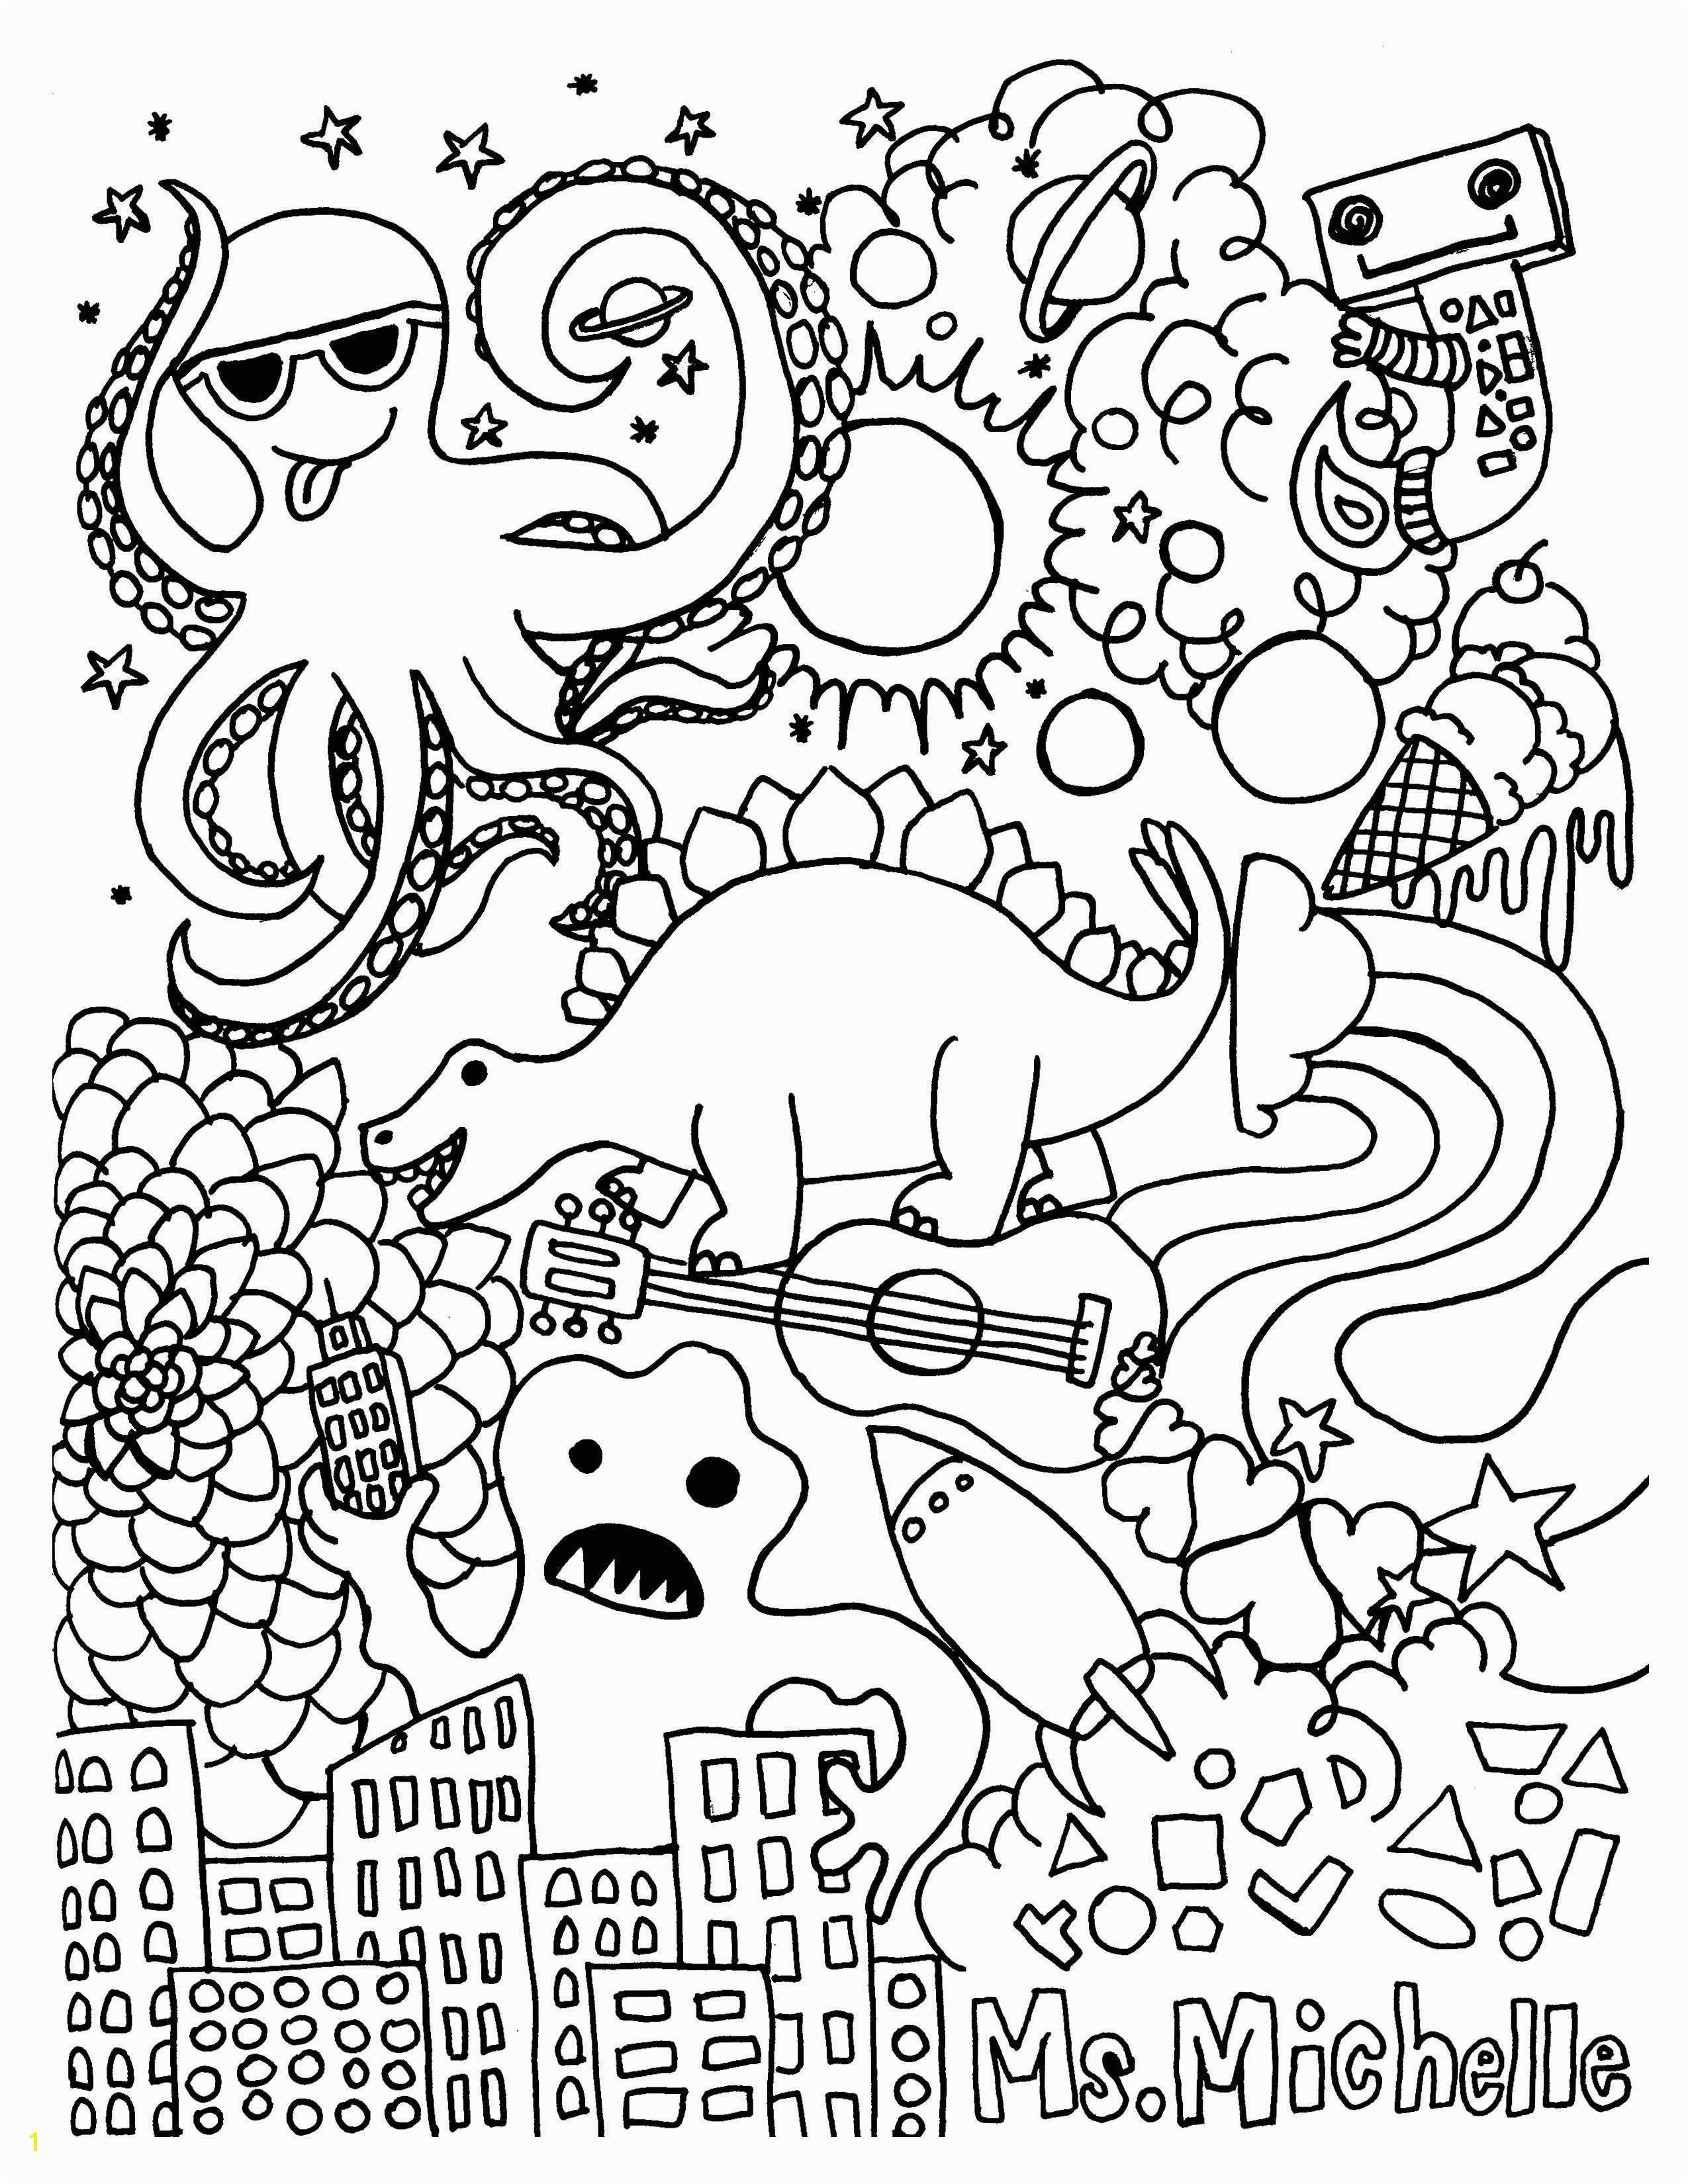 Coloring Pages Christmas Rudolph Free Christmas Coloring Pages Rudolph Fresh Colouring Family C3 82